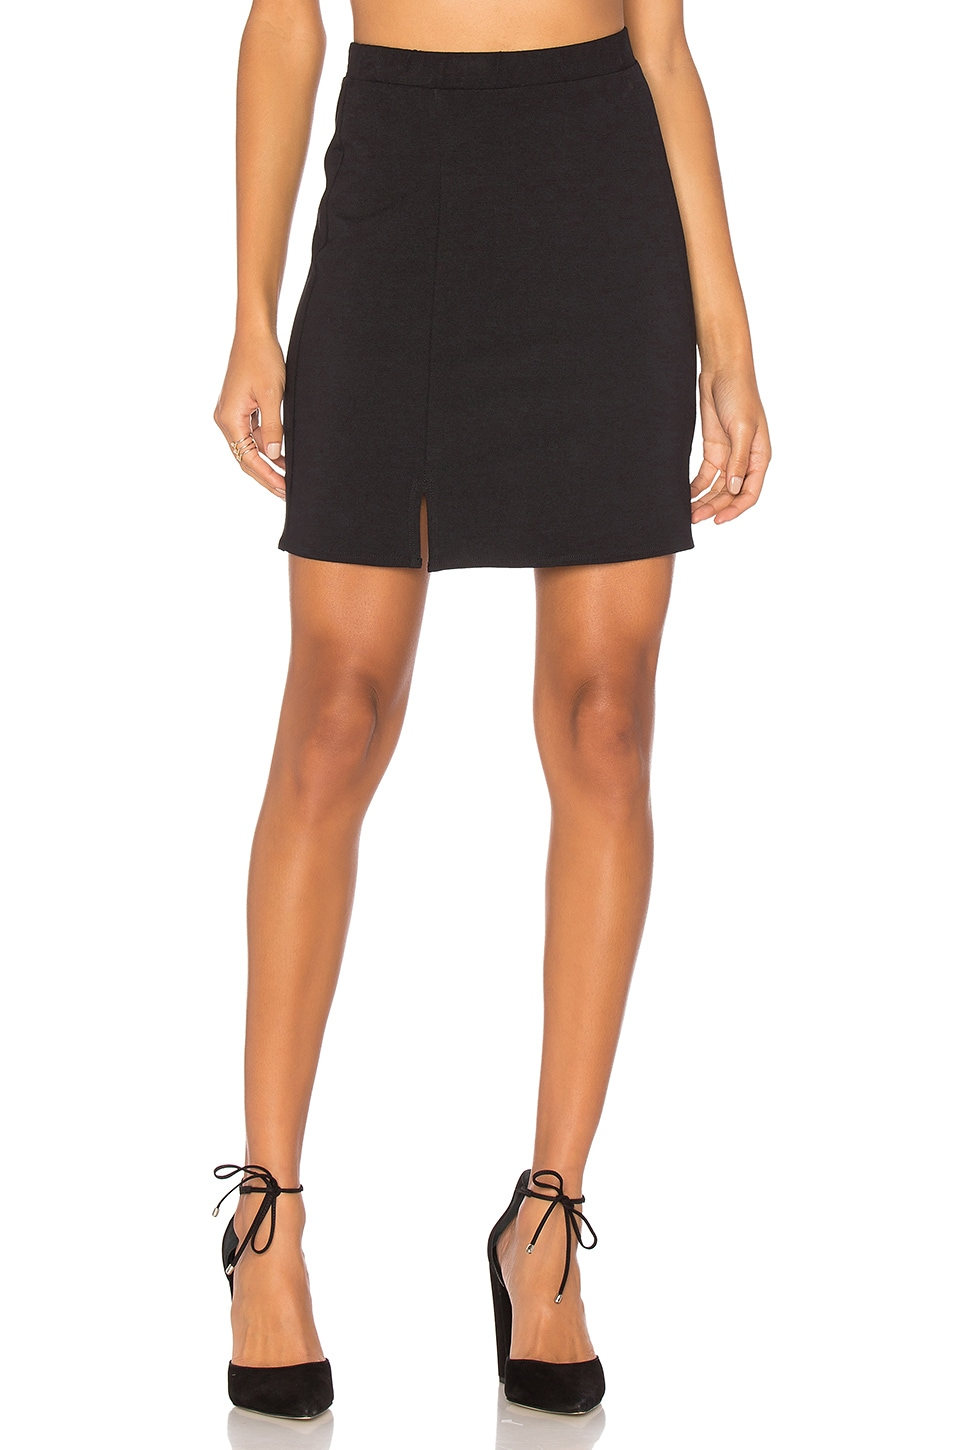 twenty Double Slit Mini Skirt in Black